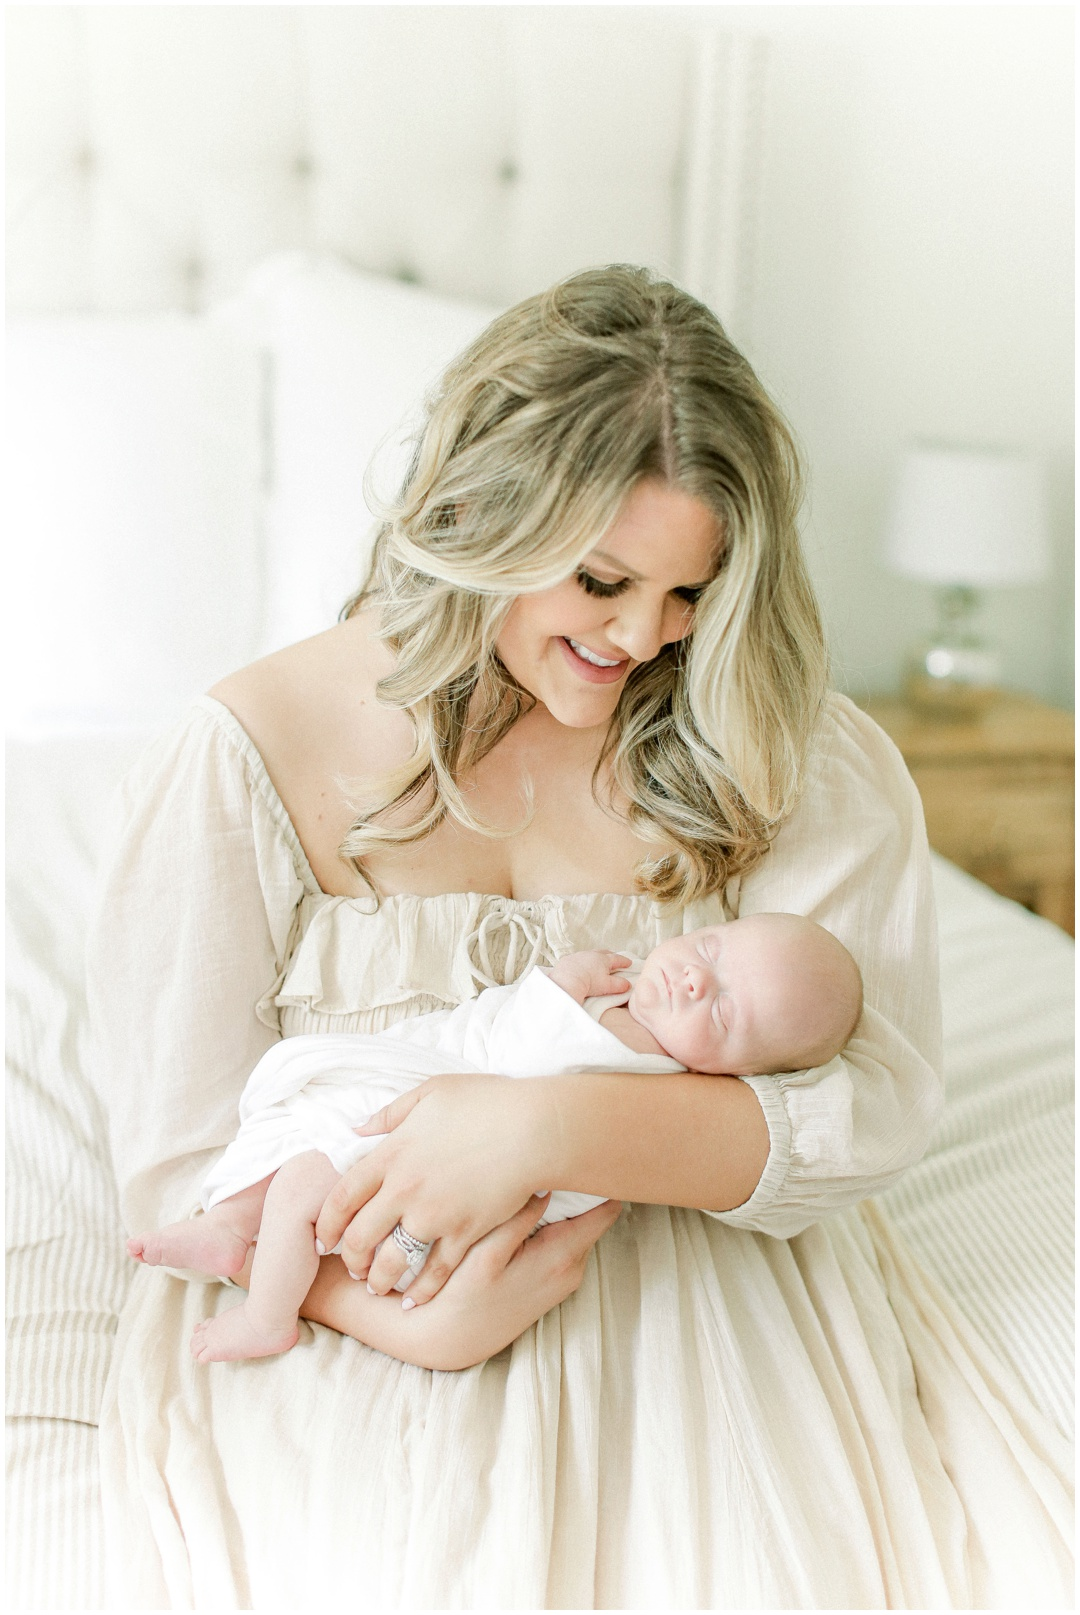 Newport_Beach_Newborn_Light_Airy_Natural_Photographer_Newport_Beach_In-Home_Photographer_Orange_County_Family_Photographer_Cori_Kleckner_Photography_Huntington_Beach_Photographer_Family_OC_Newborn_Meghan_Sullivan_Newborn_Family_Greer_Sullivan_3246.jpg